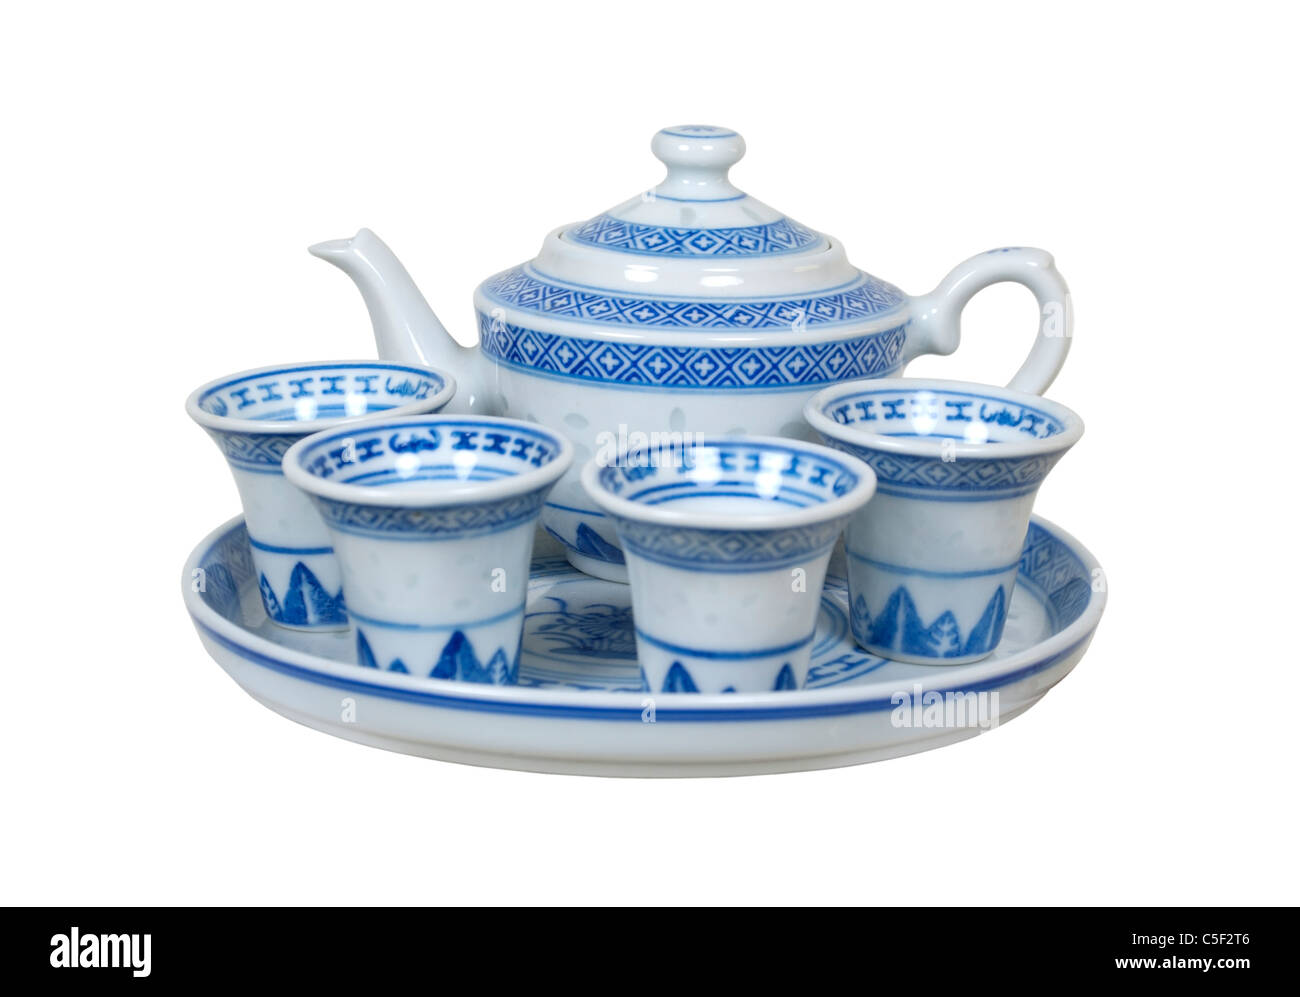 A tea set. What is included in the set for the tea ceremony 92